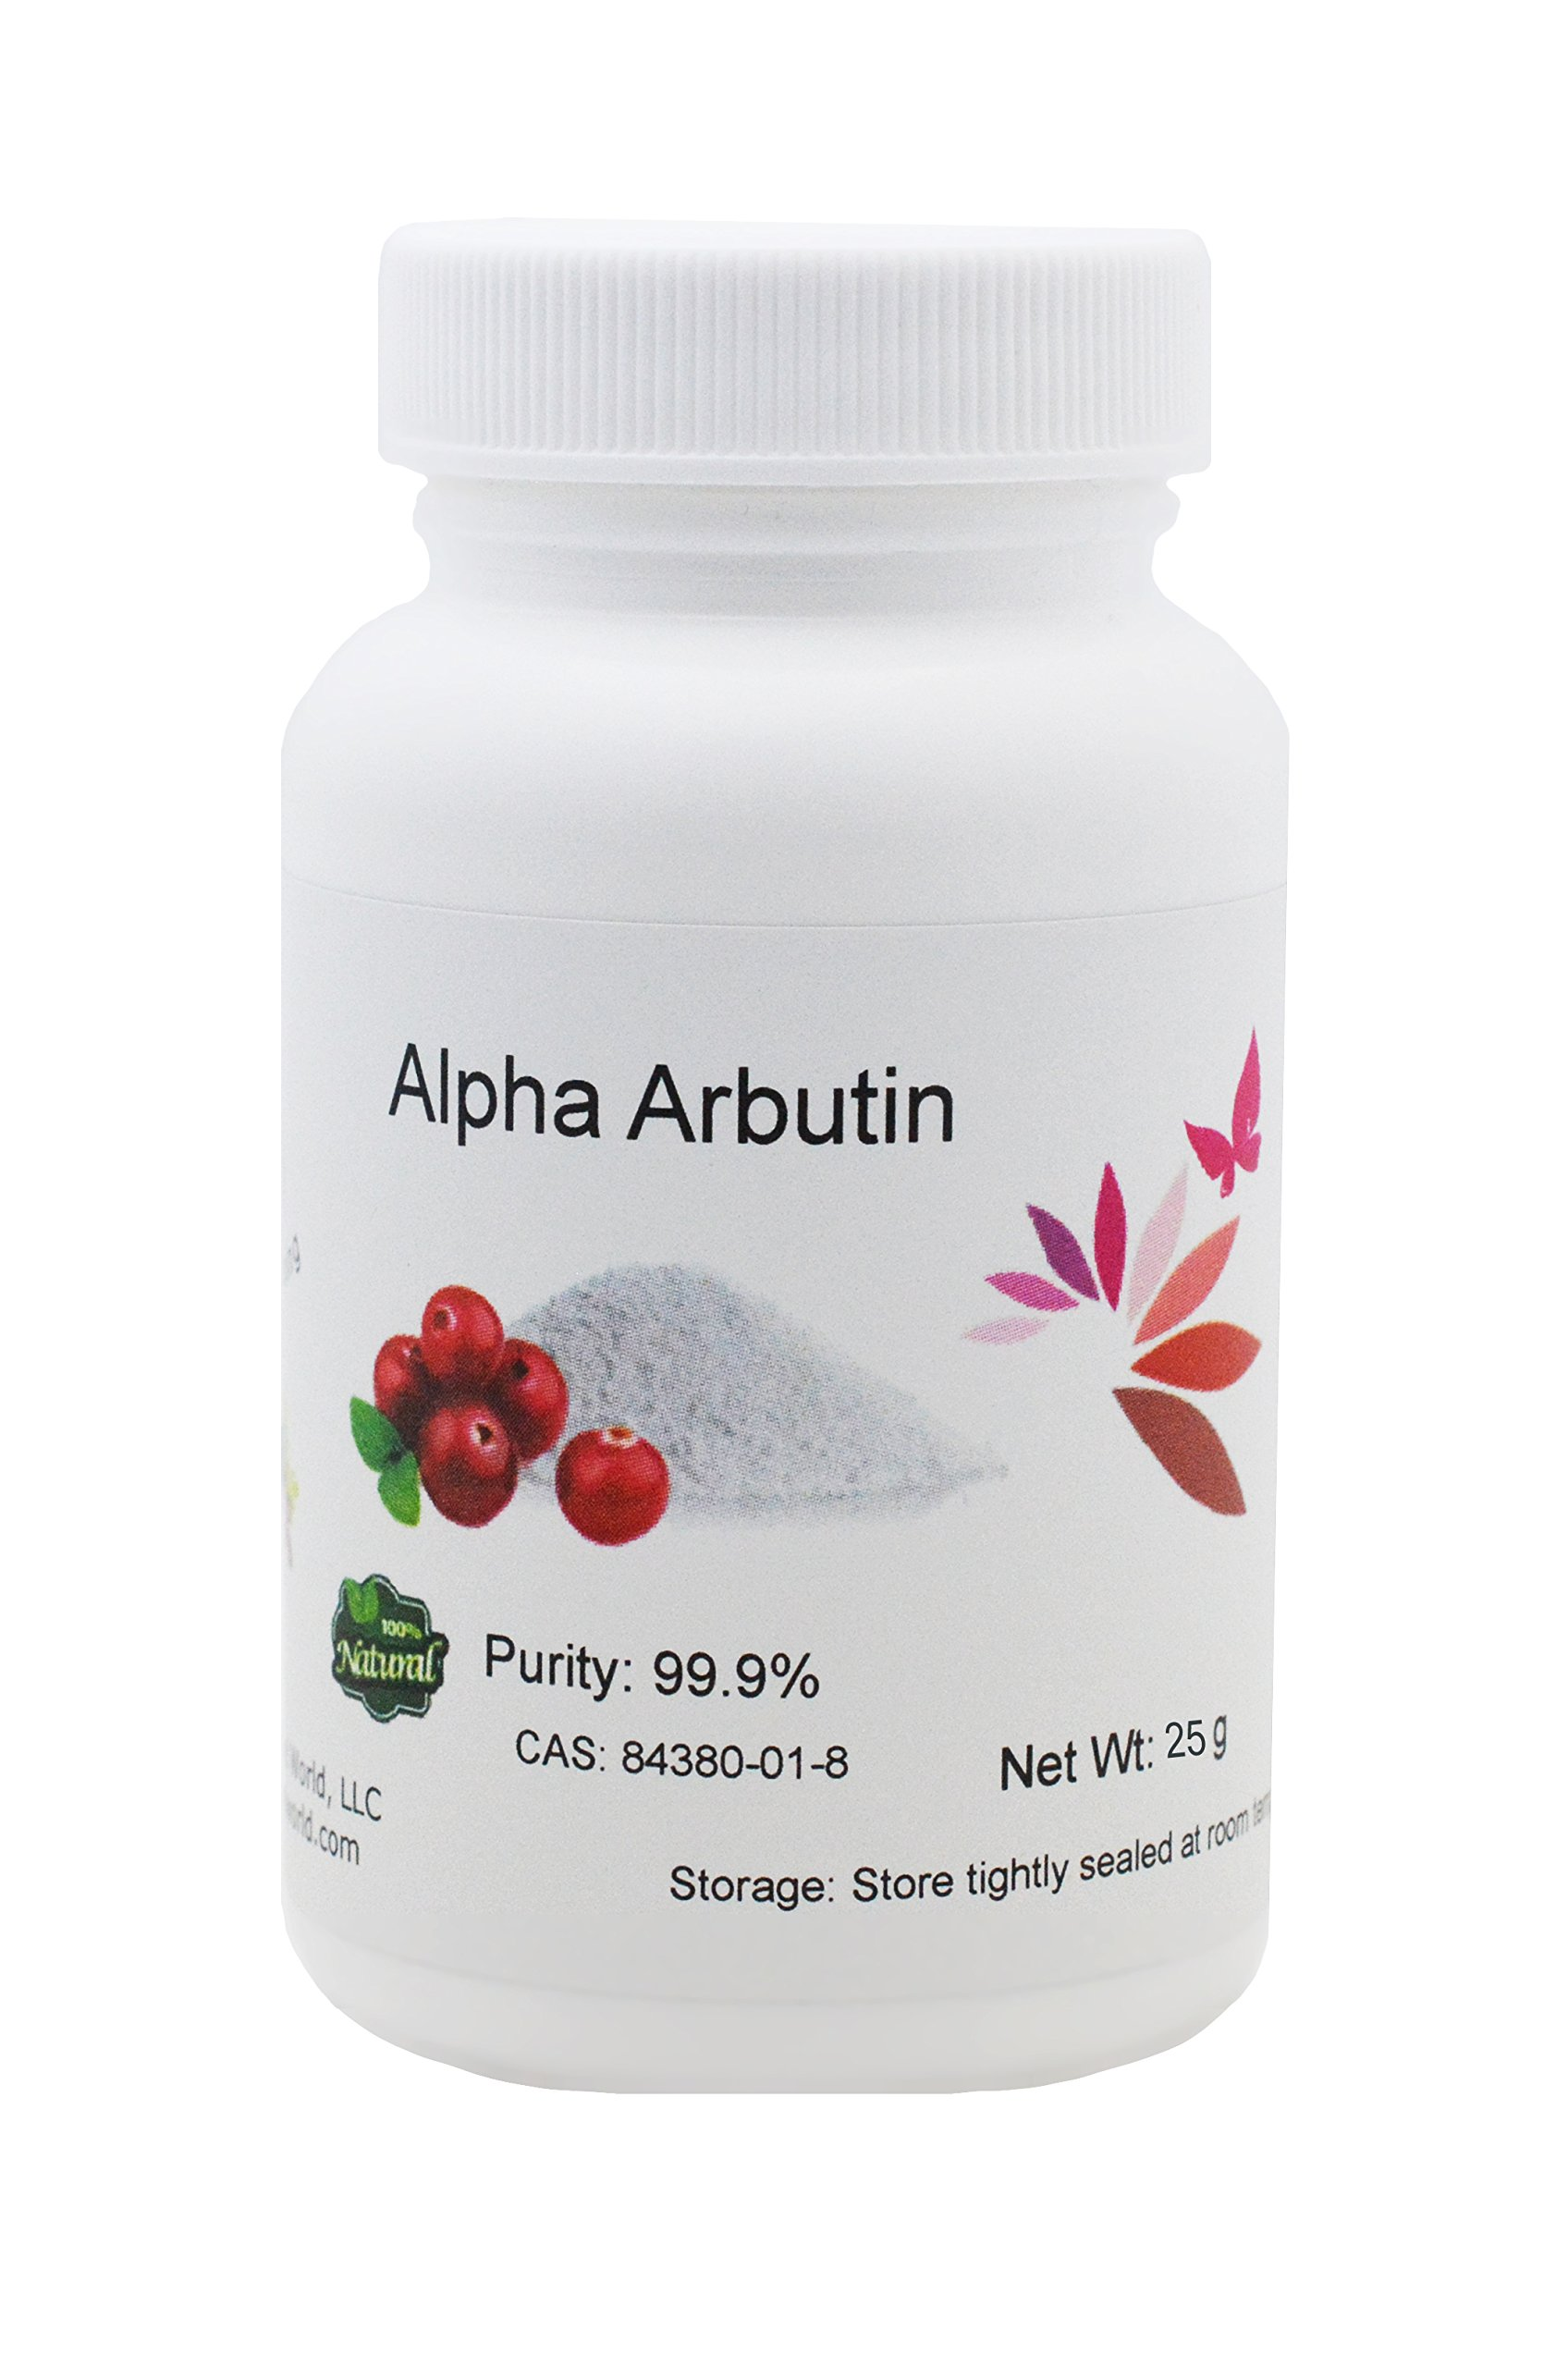 Pure Alpha-Arbutin Powder, 25 g, Quality Guaranteed! Good for Skin Lightening